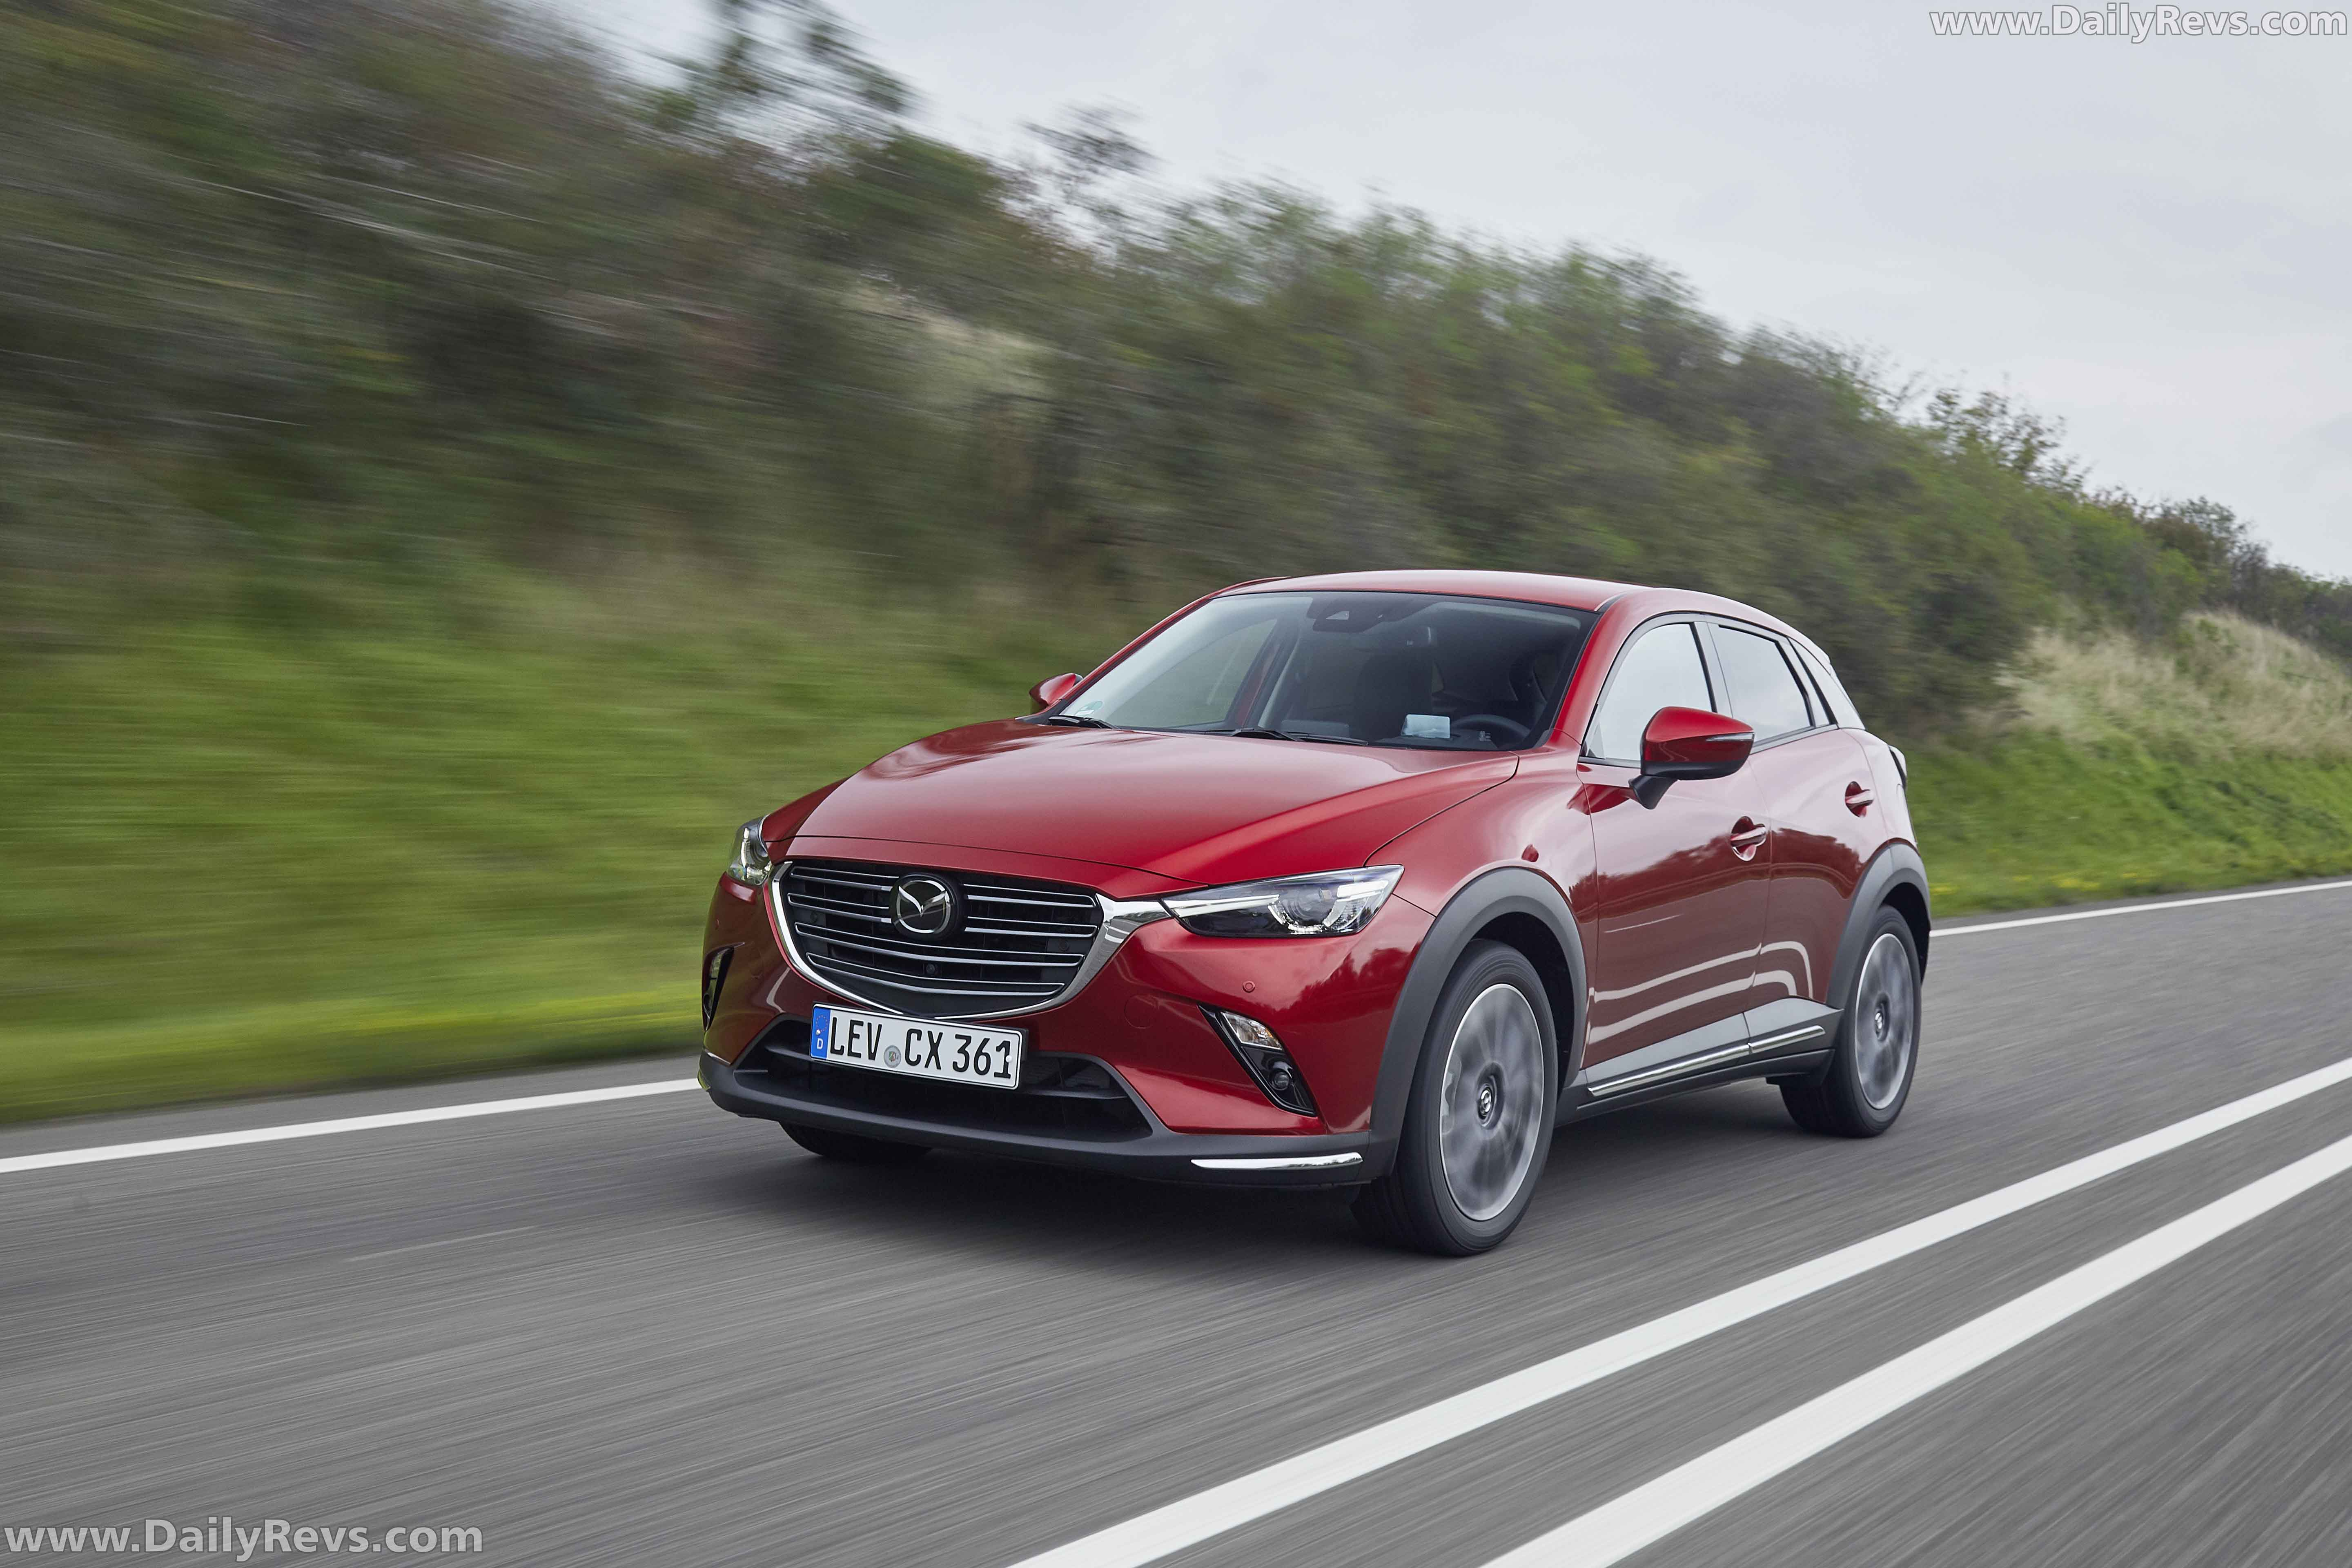 2021 mazda cx-3 - soul red crystal - dailyrevs